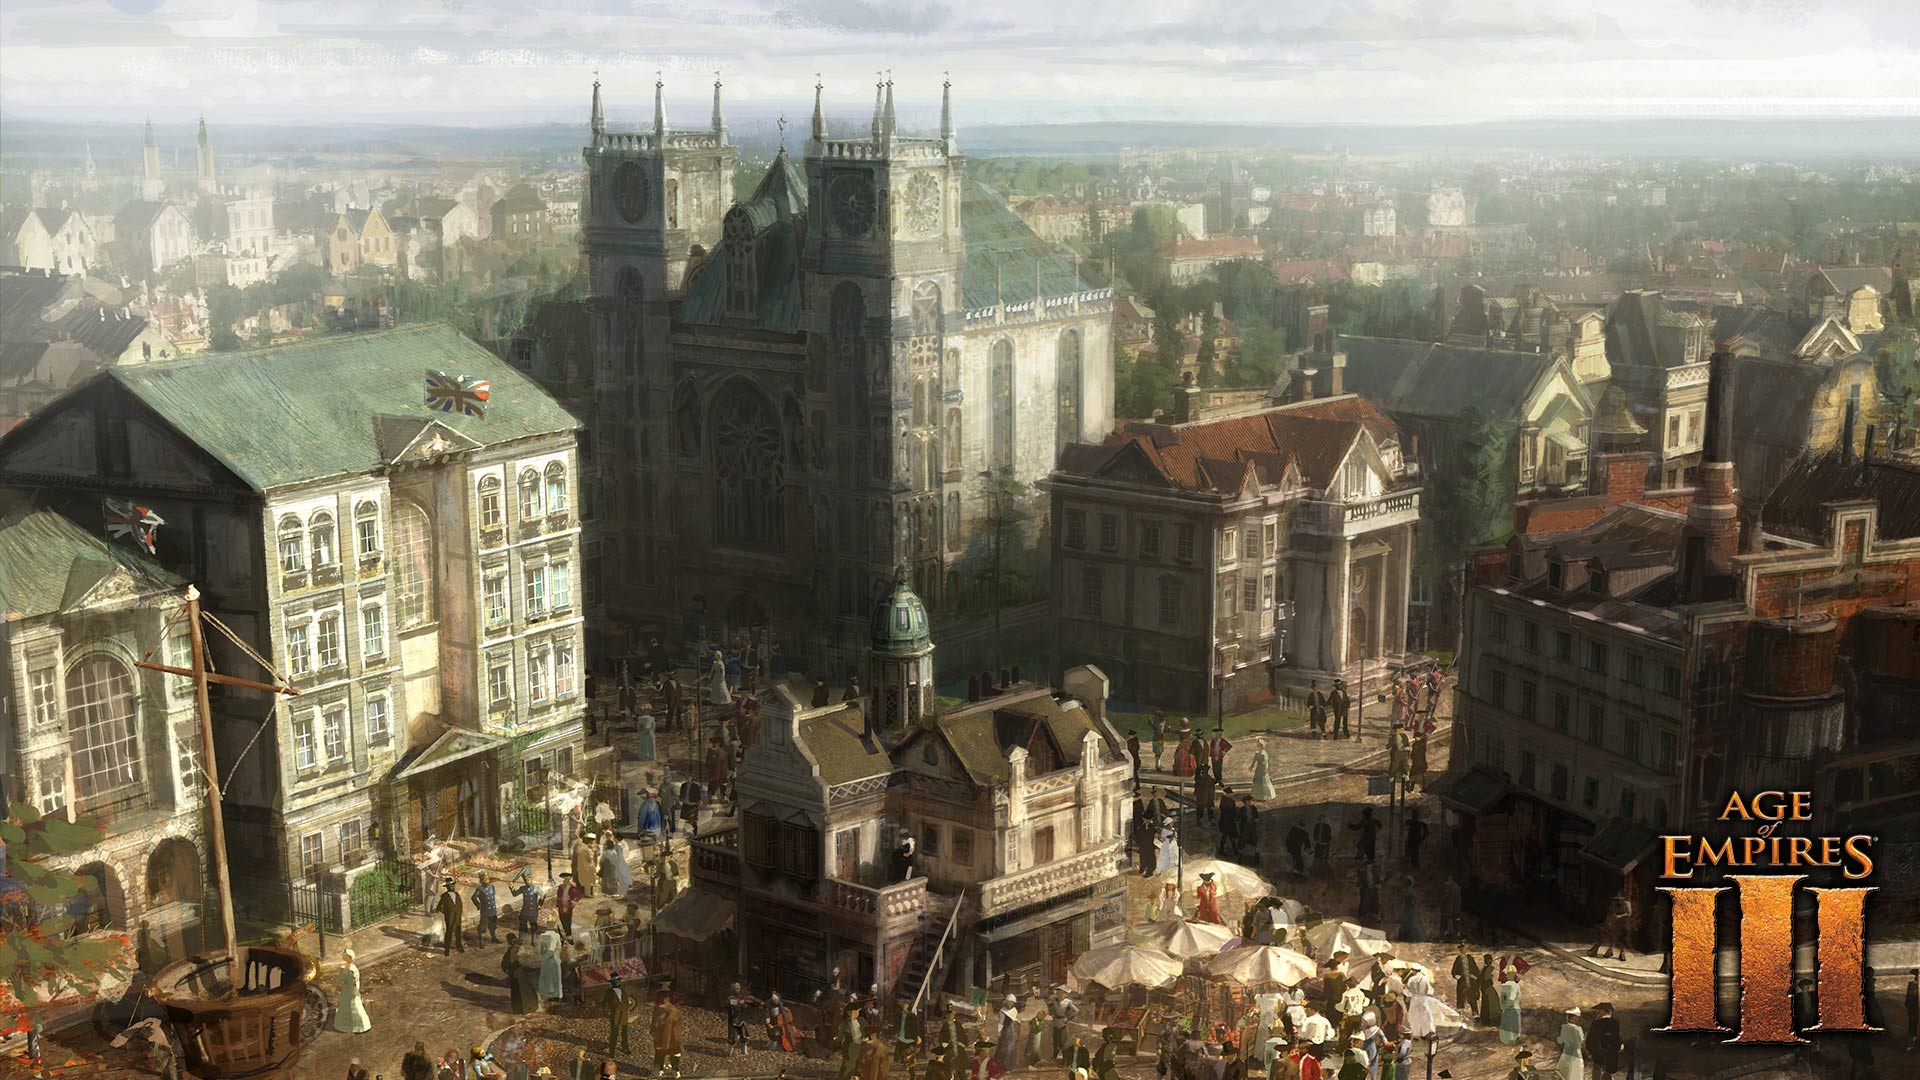 Age of Empires III - Homecity | Steam Trading Cards Wiki